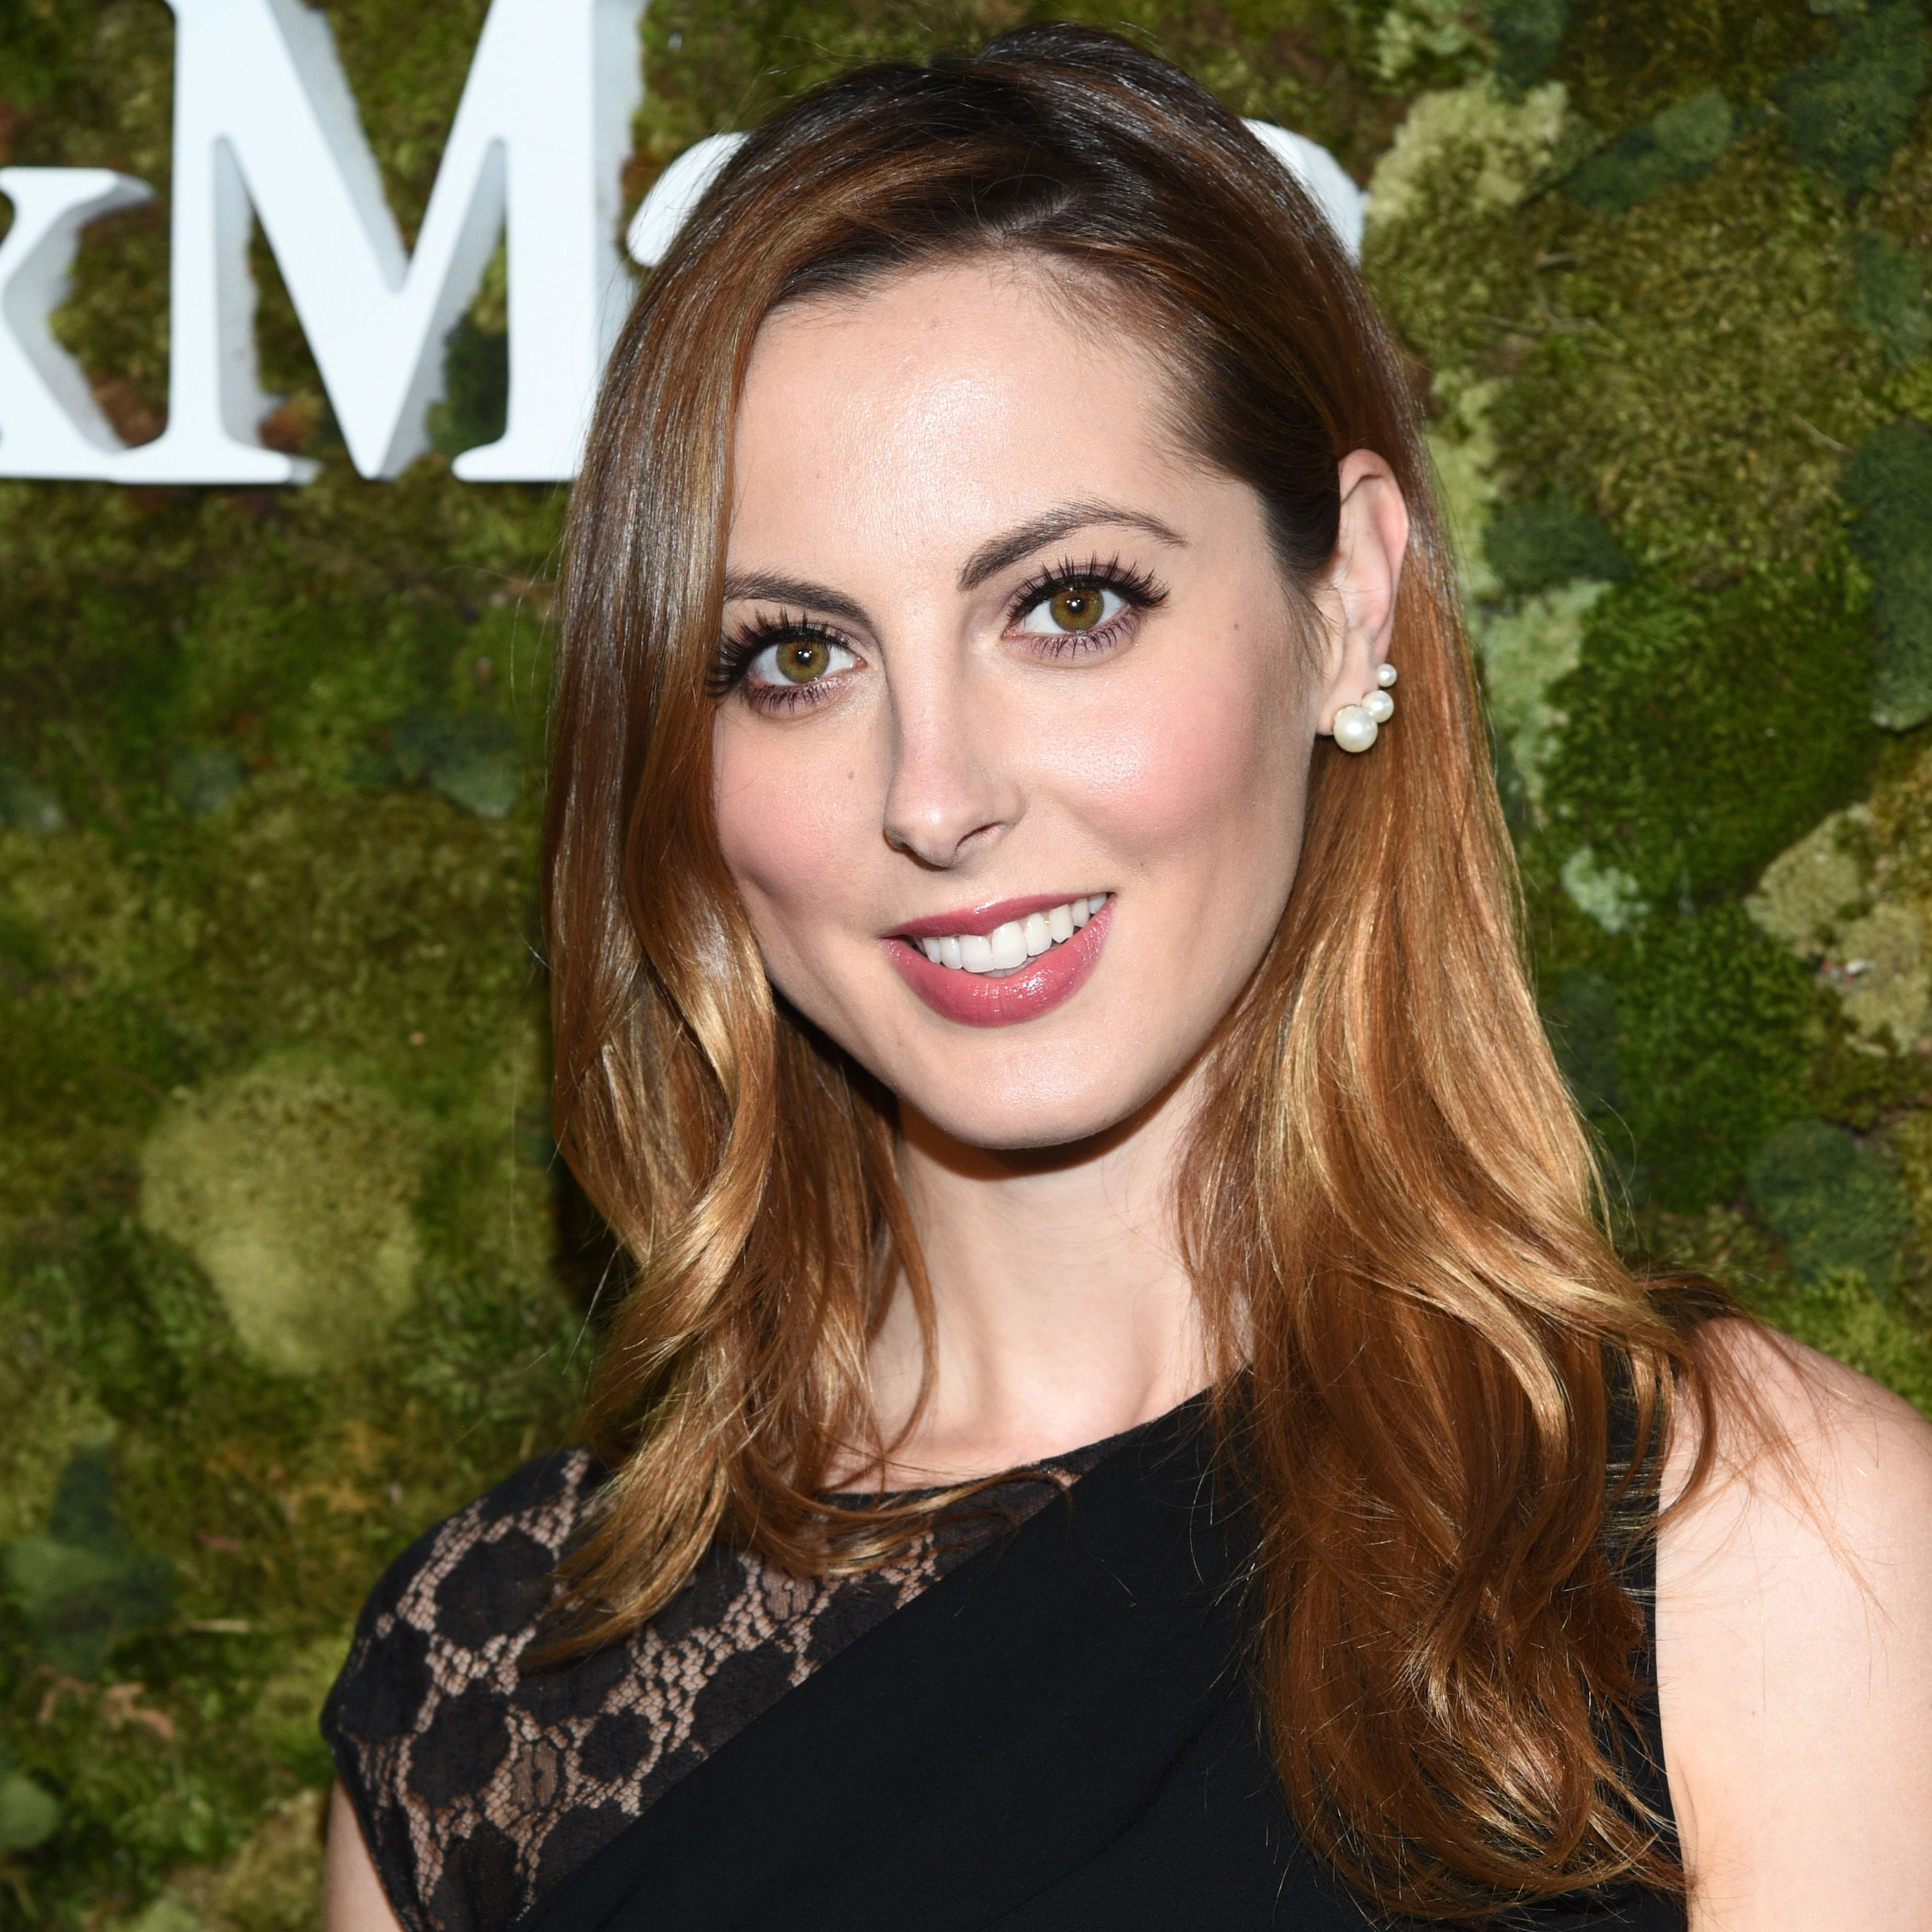 Is a cute Eva Amurri nude photos 2019